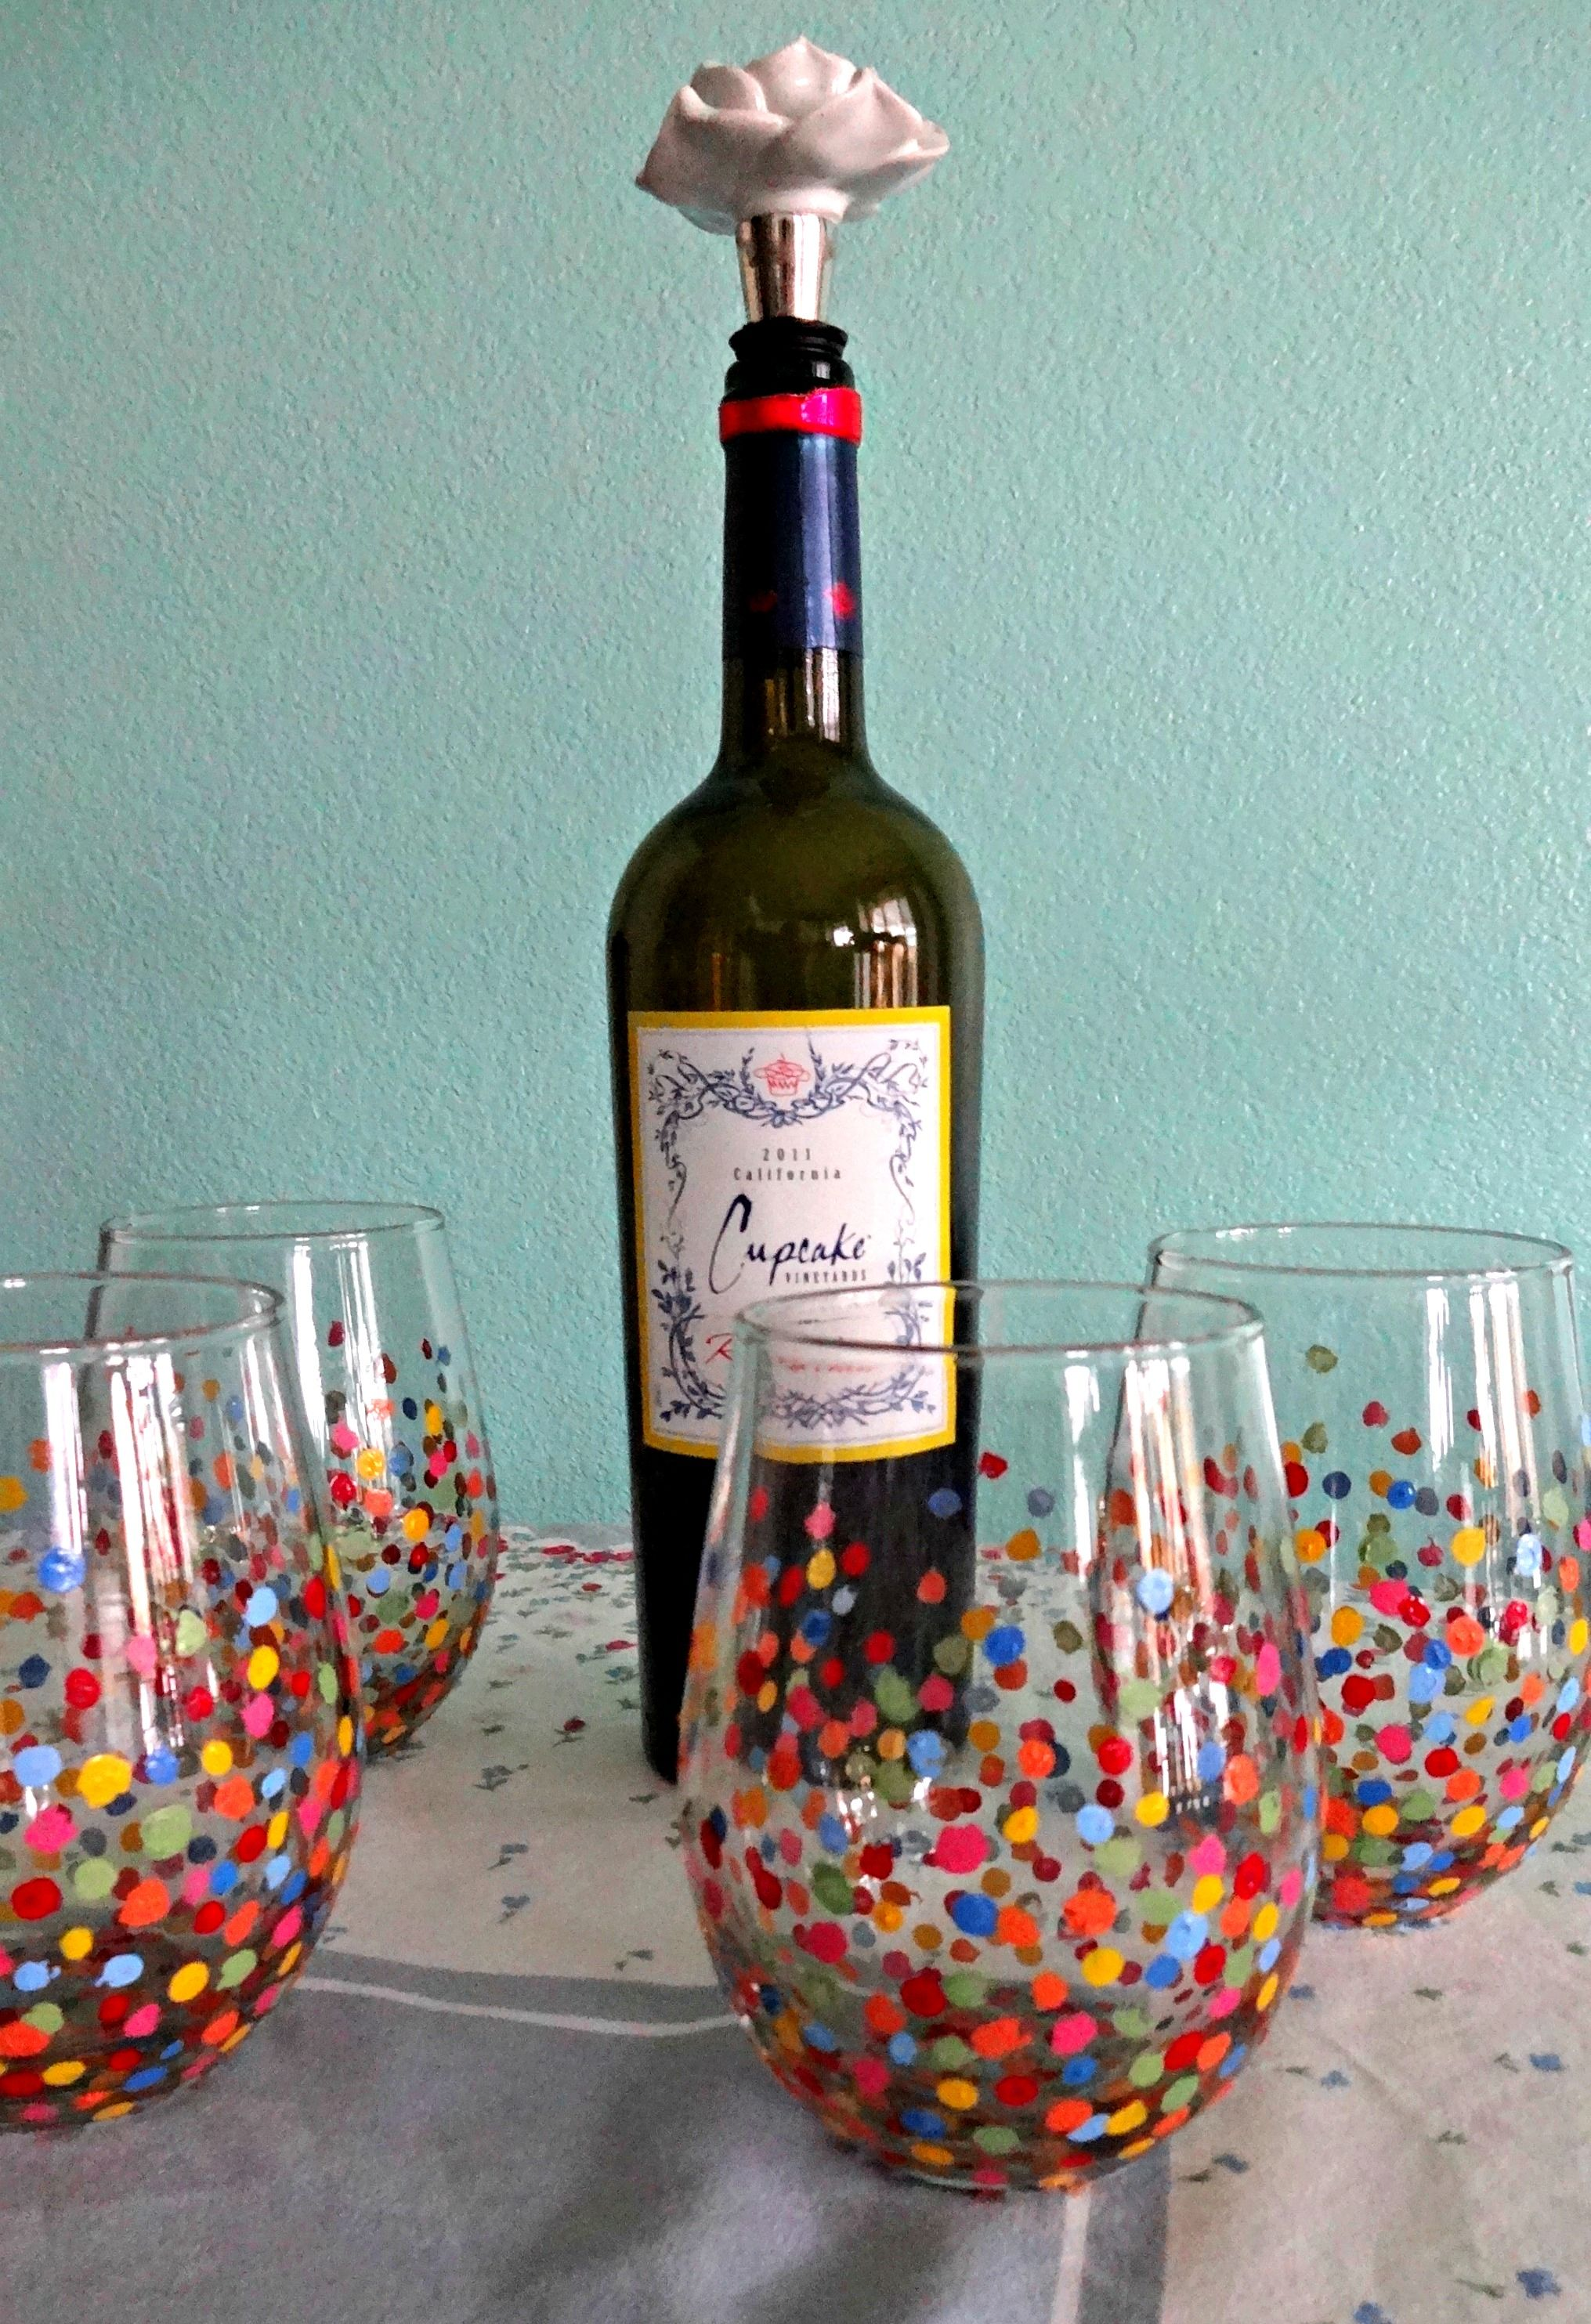 15 Painted Wine Glass Projects To Use At Diy Gifts Diy Wine Glasses Painted Wine Glass Crafts Diy Wine Glasses